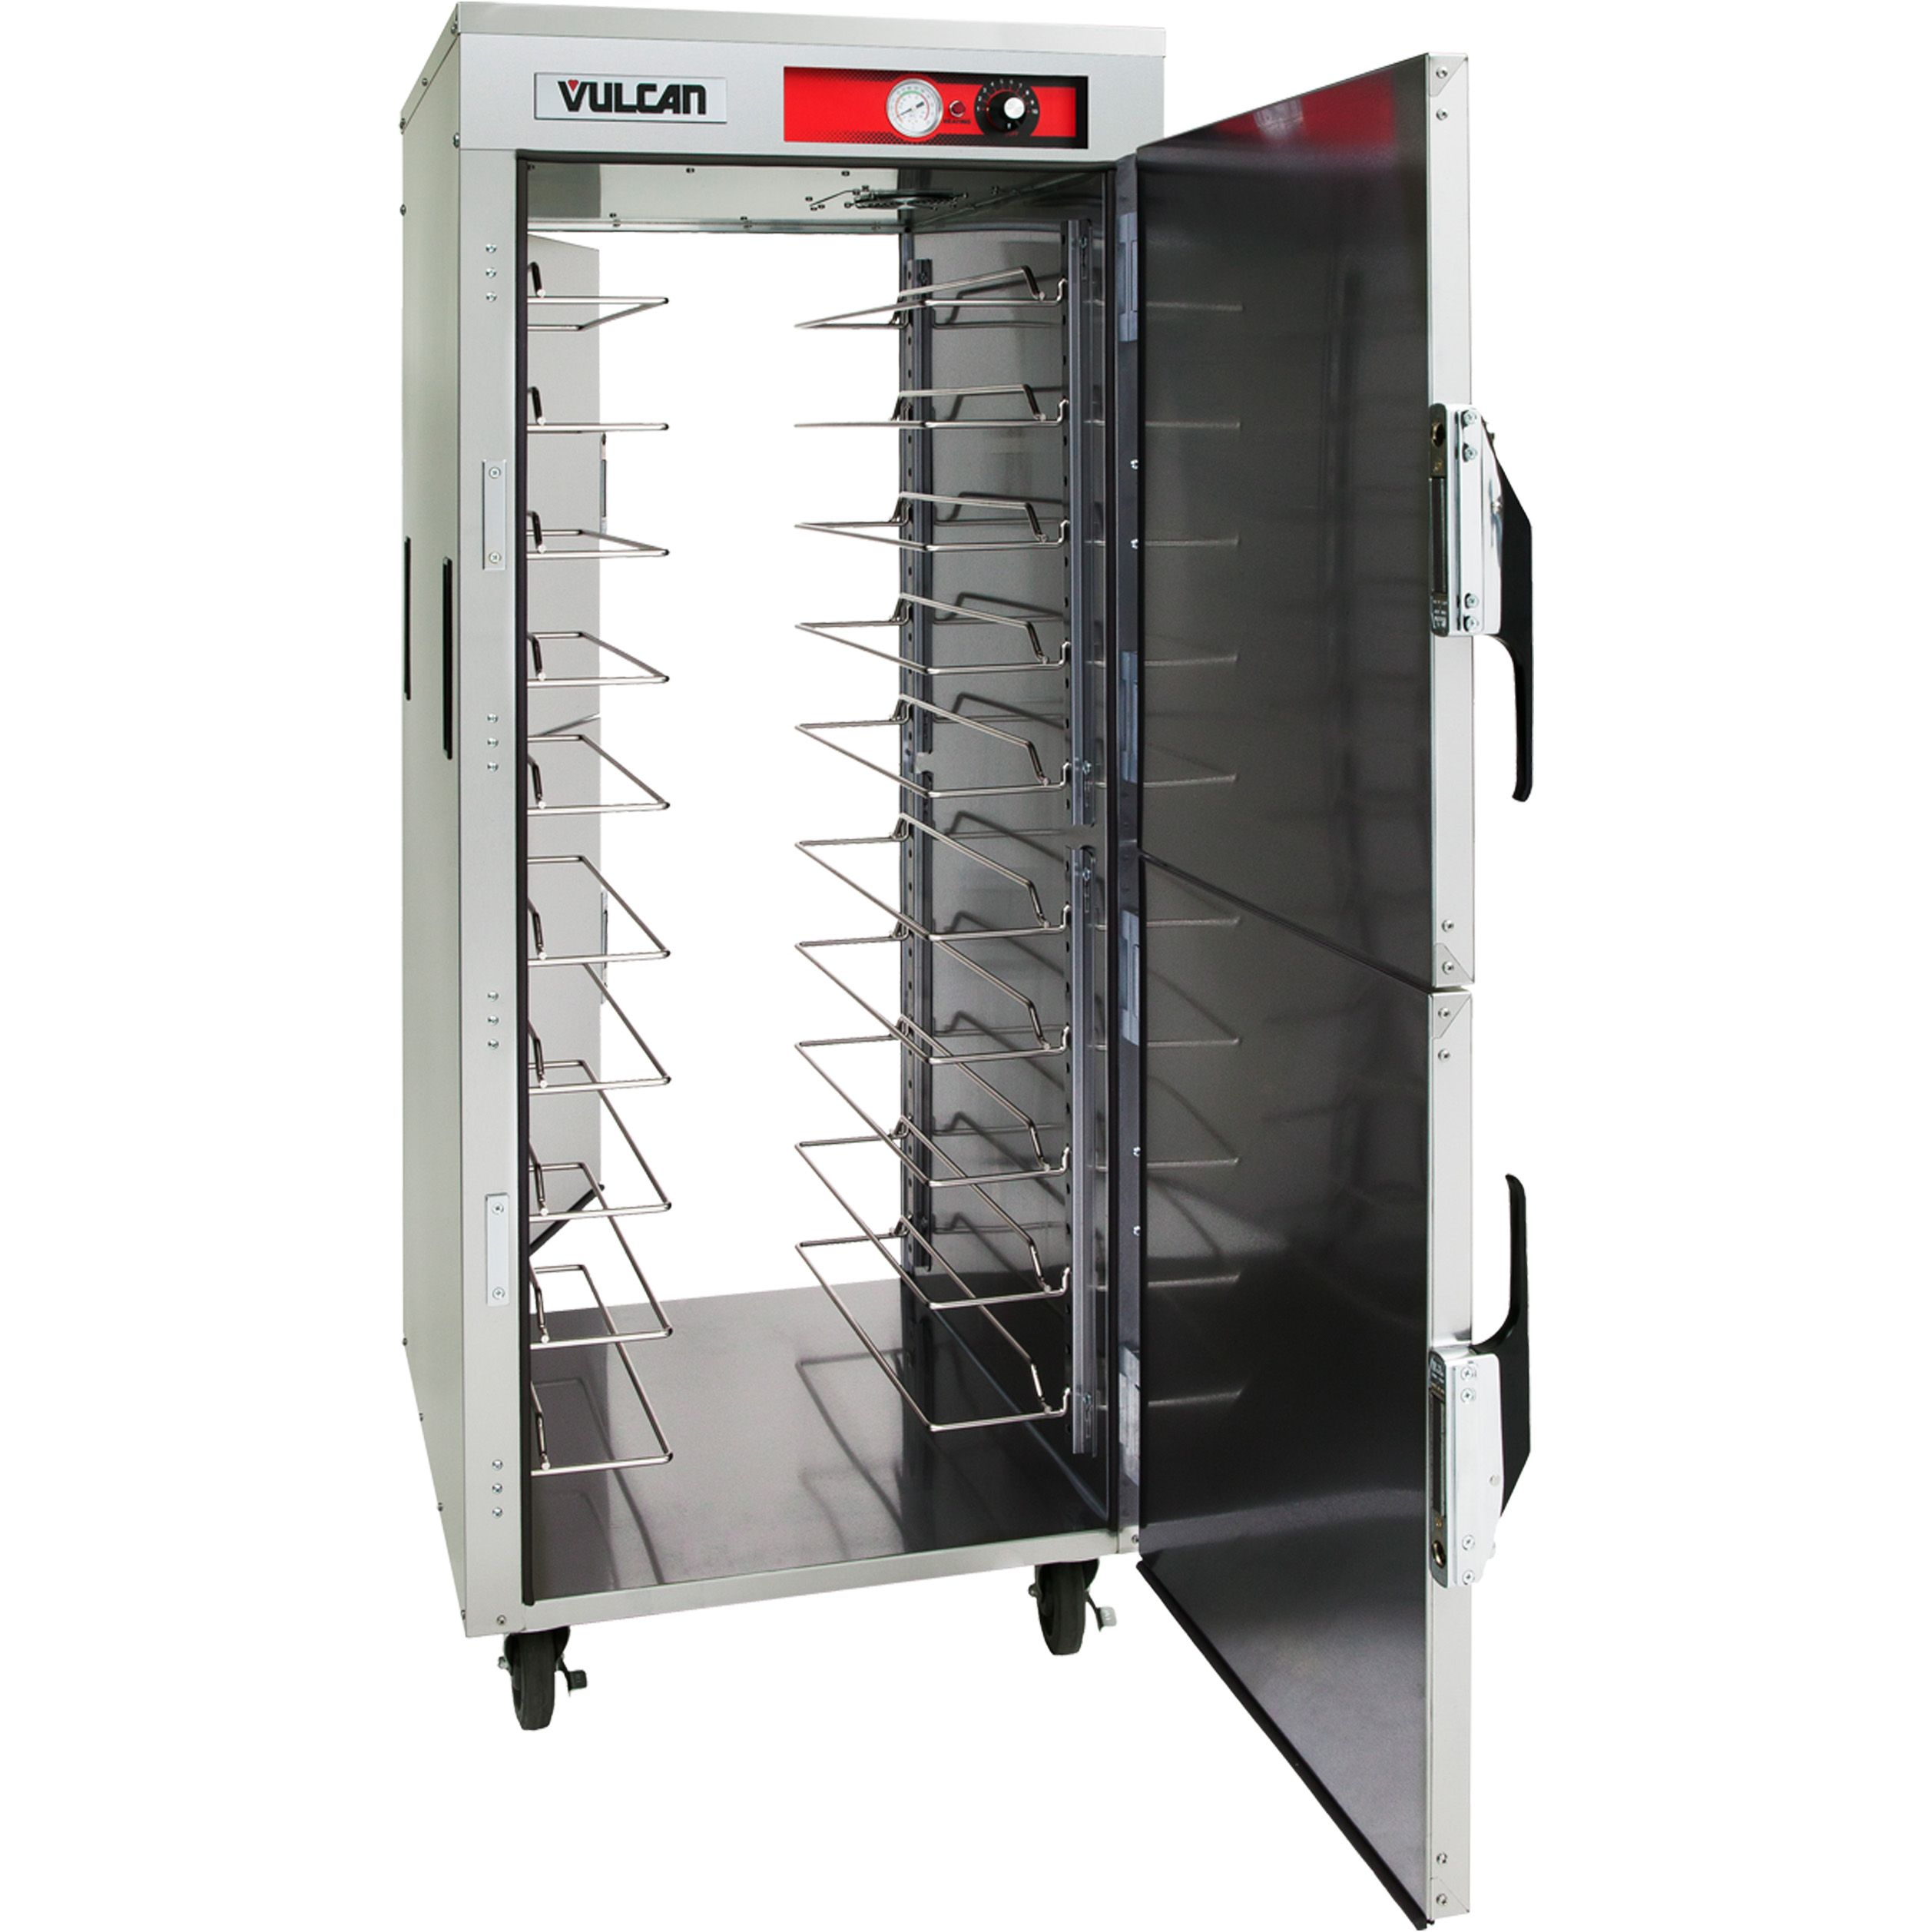 Vulcan VPT15LL heated cabinet, mobile, pass-thru